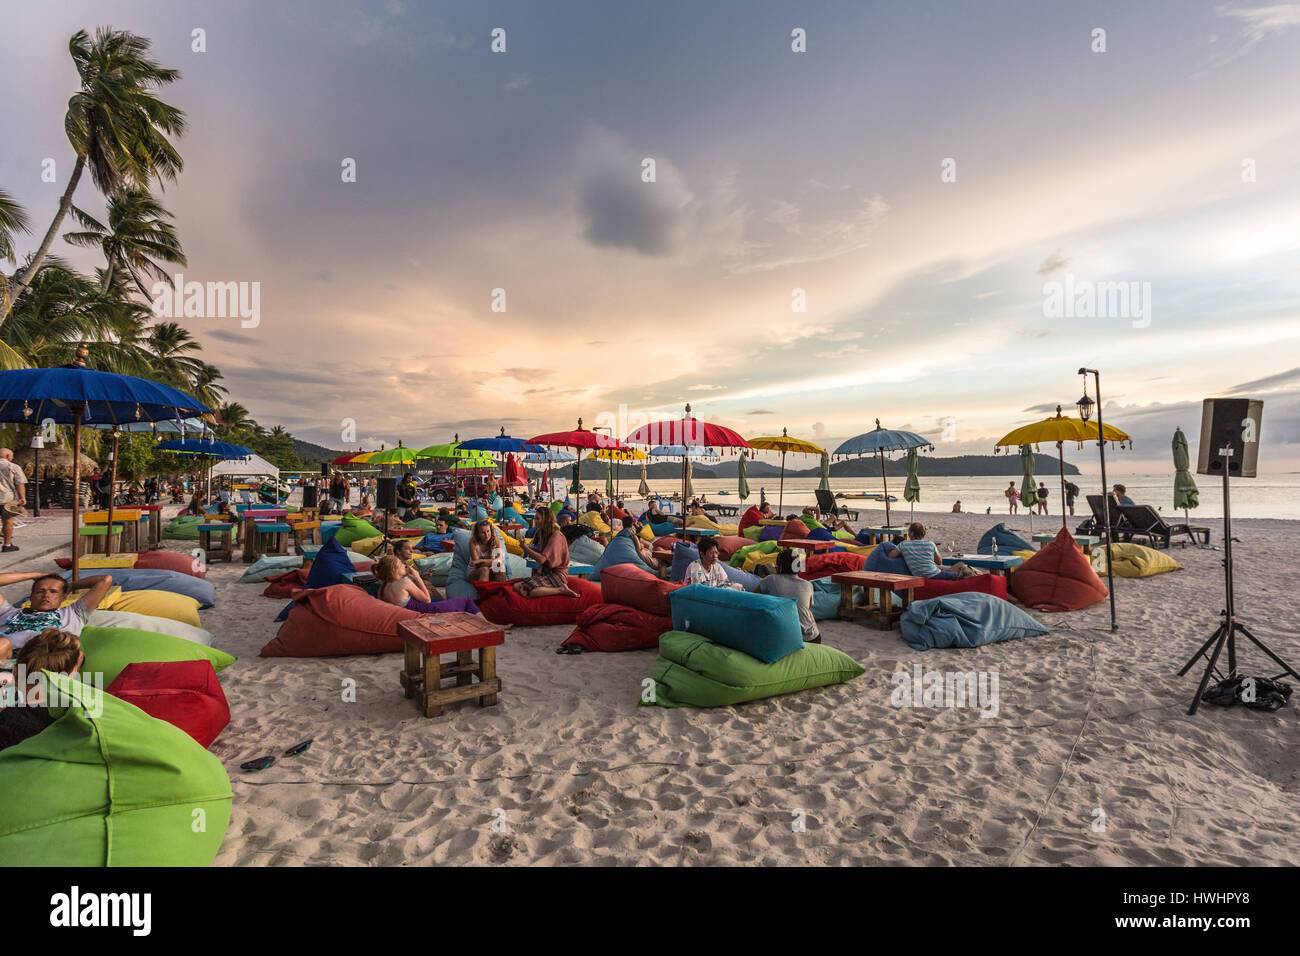 LANGKAWI, MALAYSIA - JANUARY 19, 2017: Tourists enjoy a drink in a beach bar on Cenang beach in Langkawi, an island Stock Photo